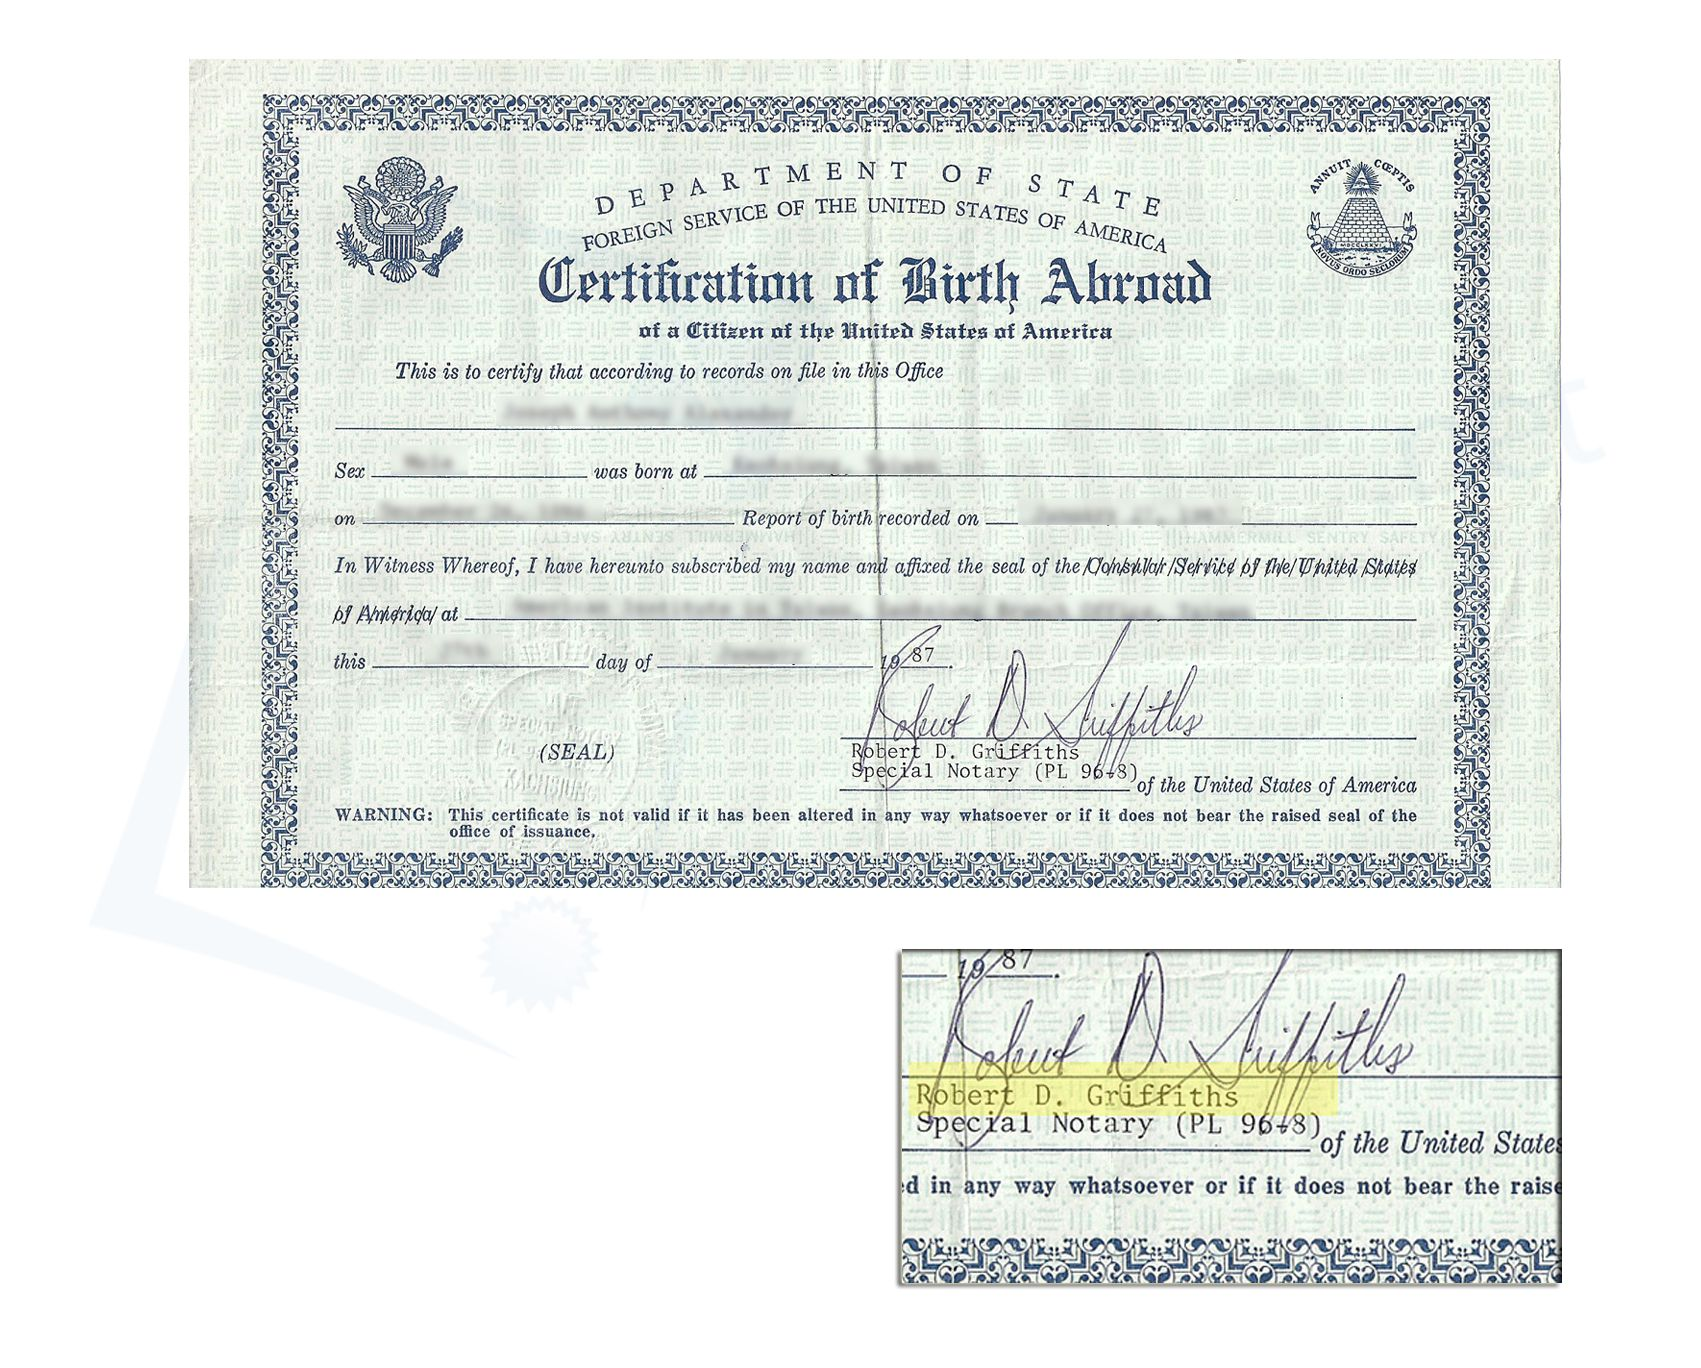 80s Consular Certificate Of Birth Abroad Signed By Robert D